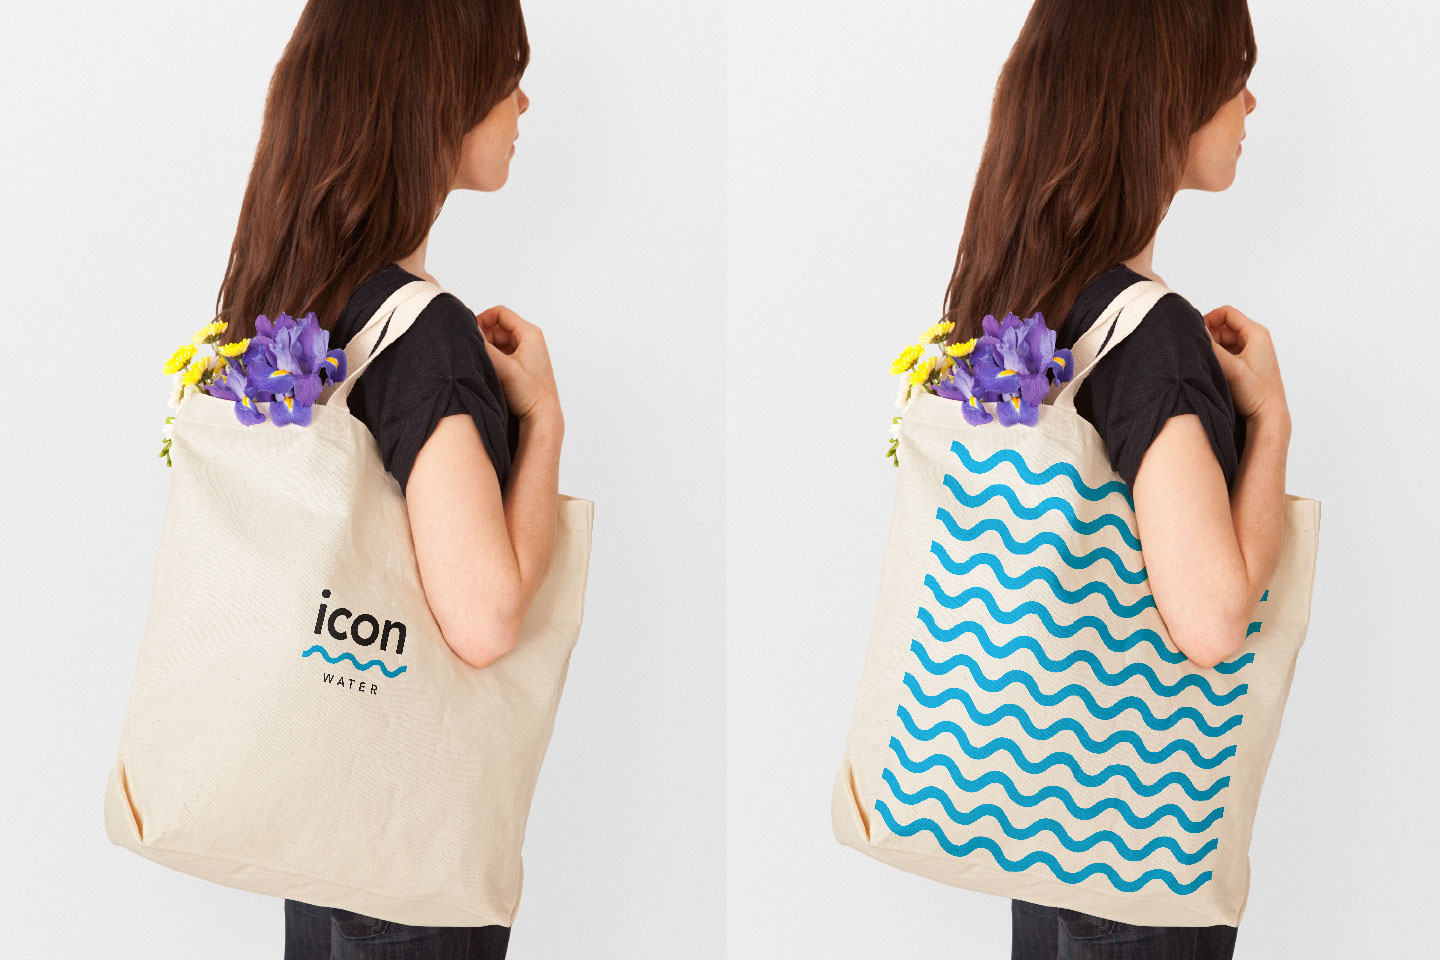 Icon water Calico bag